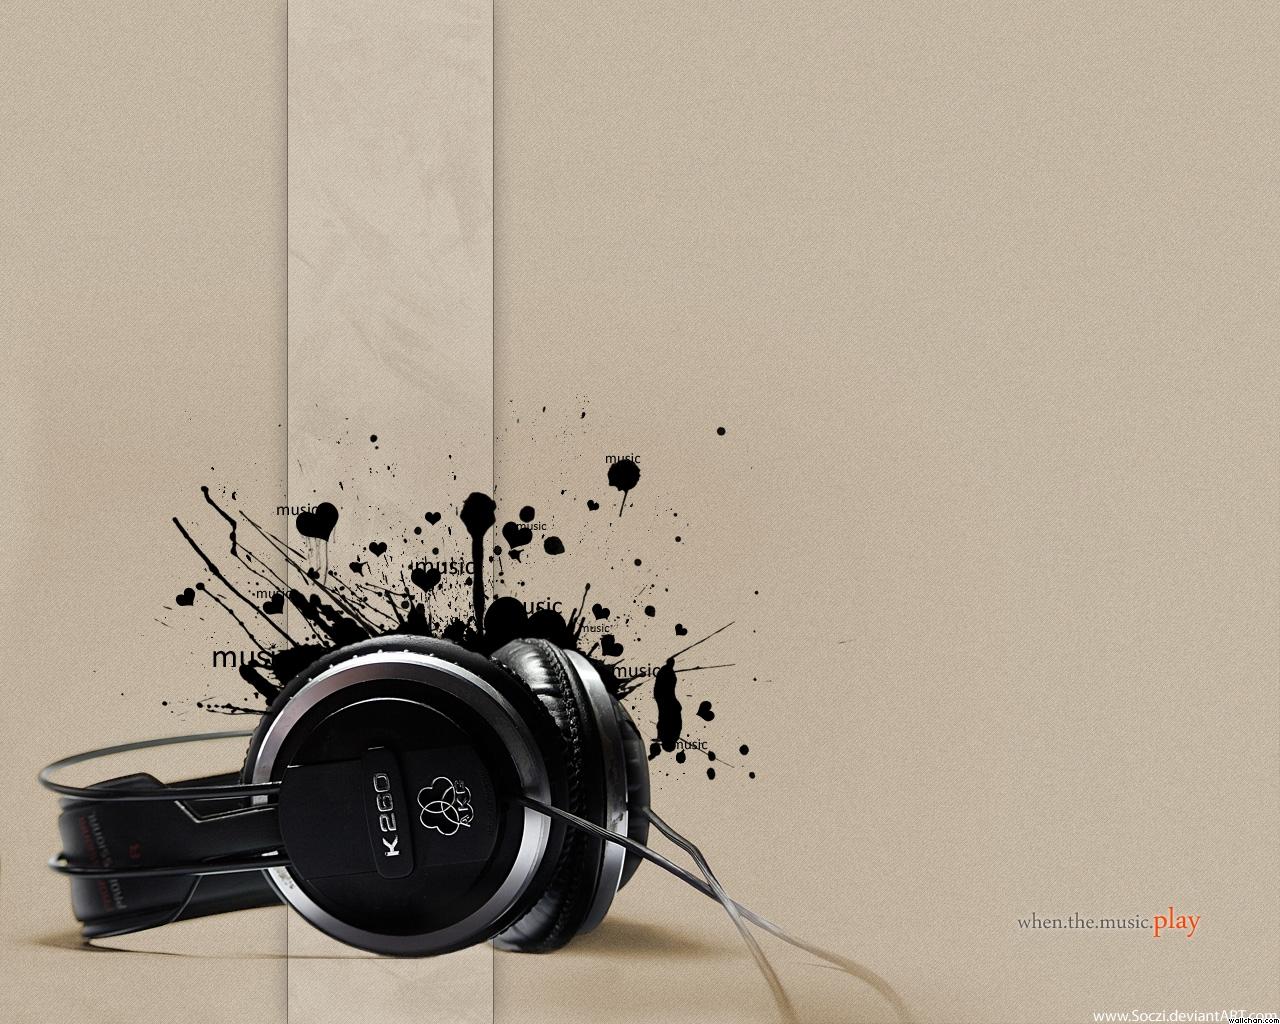 http://3.bp.blogspot.com/-_ja3ds3iYwE/TfmjJudx-rI/AAAAAAAAAGg/O_9Xbu6IE08/s1600/1305890975-headphones-music-wallpaper.jpg